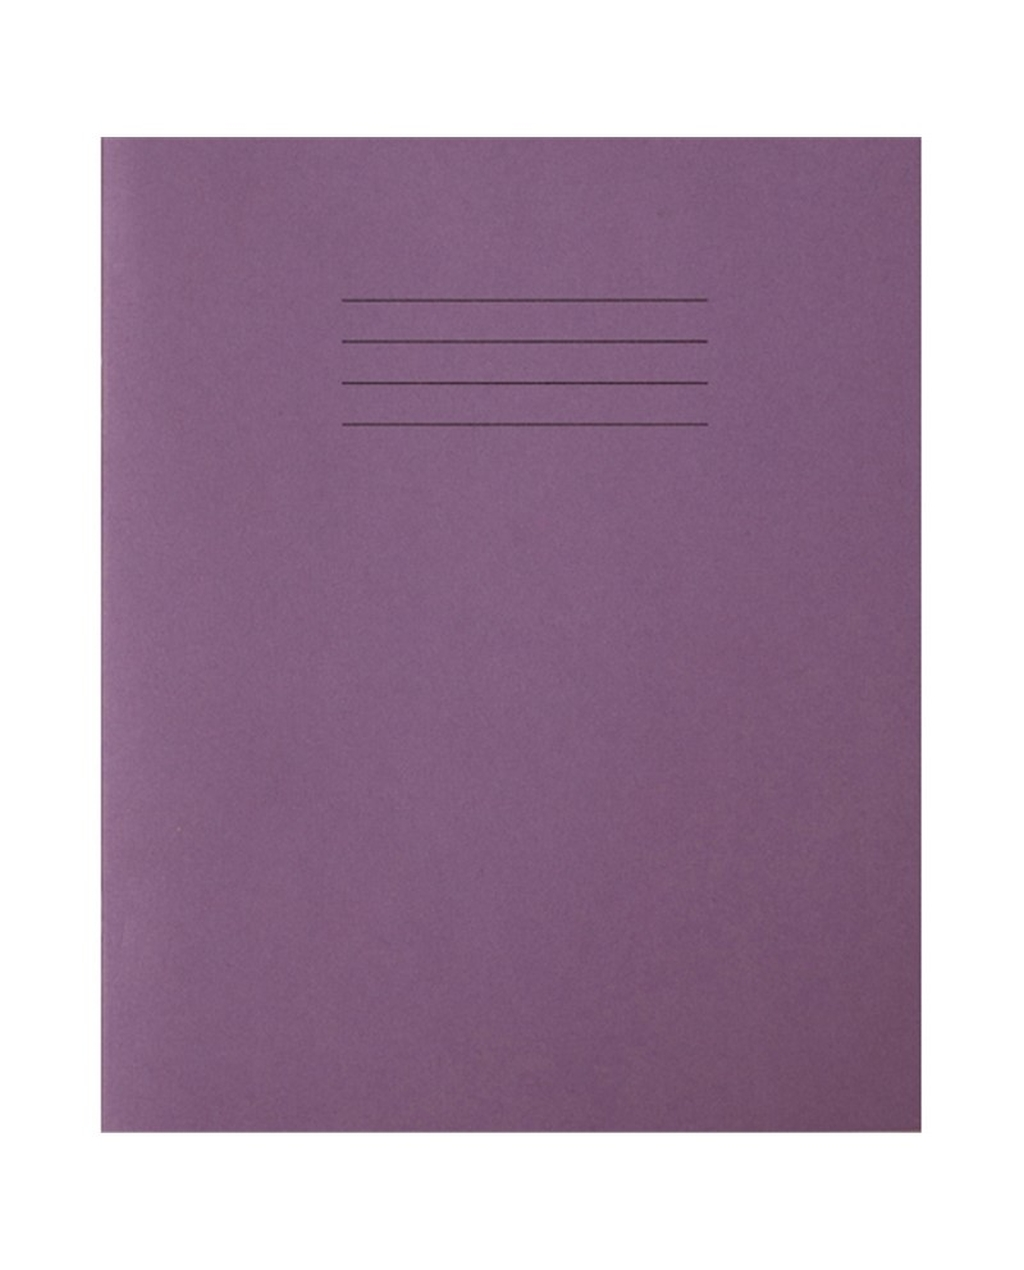 Exercise Book 8 x 6.5 (203 x 165mm) Purple Cover 8mm Ruled & Margin 48 Pages